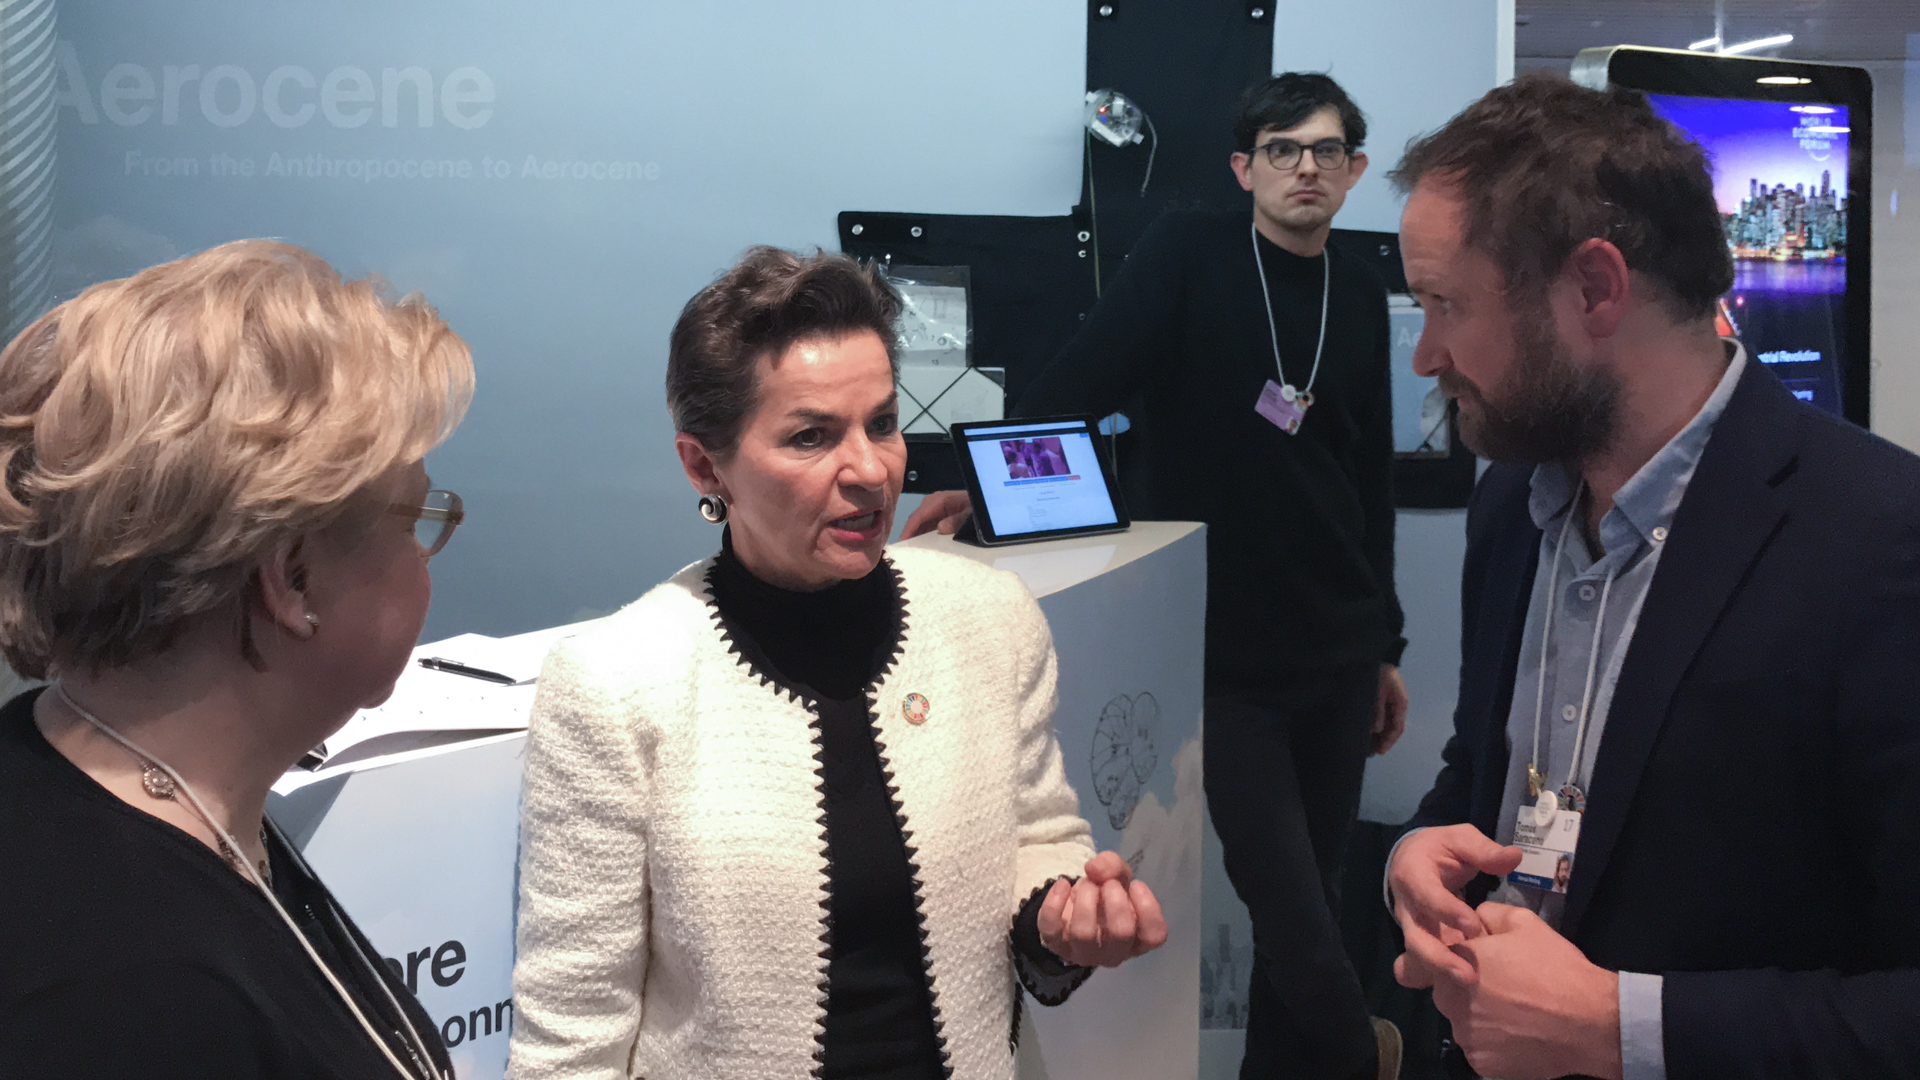 Aerocene, at the World Economic Forum Annual Meeting 2017, Davos, Switzerland. Together with Lodovica Illari, MIT EAPS, and Nick Shapiro, PublicLab. The project is developed by Aerocene Foundation. From left to right: Lodovica Illari, Department of Earth, Atmospheric and Planetary Sciences at the Massachusetts Institute of Technology (MIT); Executive Secretary of the UN Framework Convention on Climate Change (UNFCCC), Christiana Figureres; Tomás Saraceno. (Credit: © Photography by Studio Tomás Saraceno, 2017)